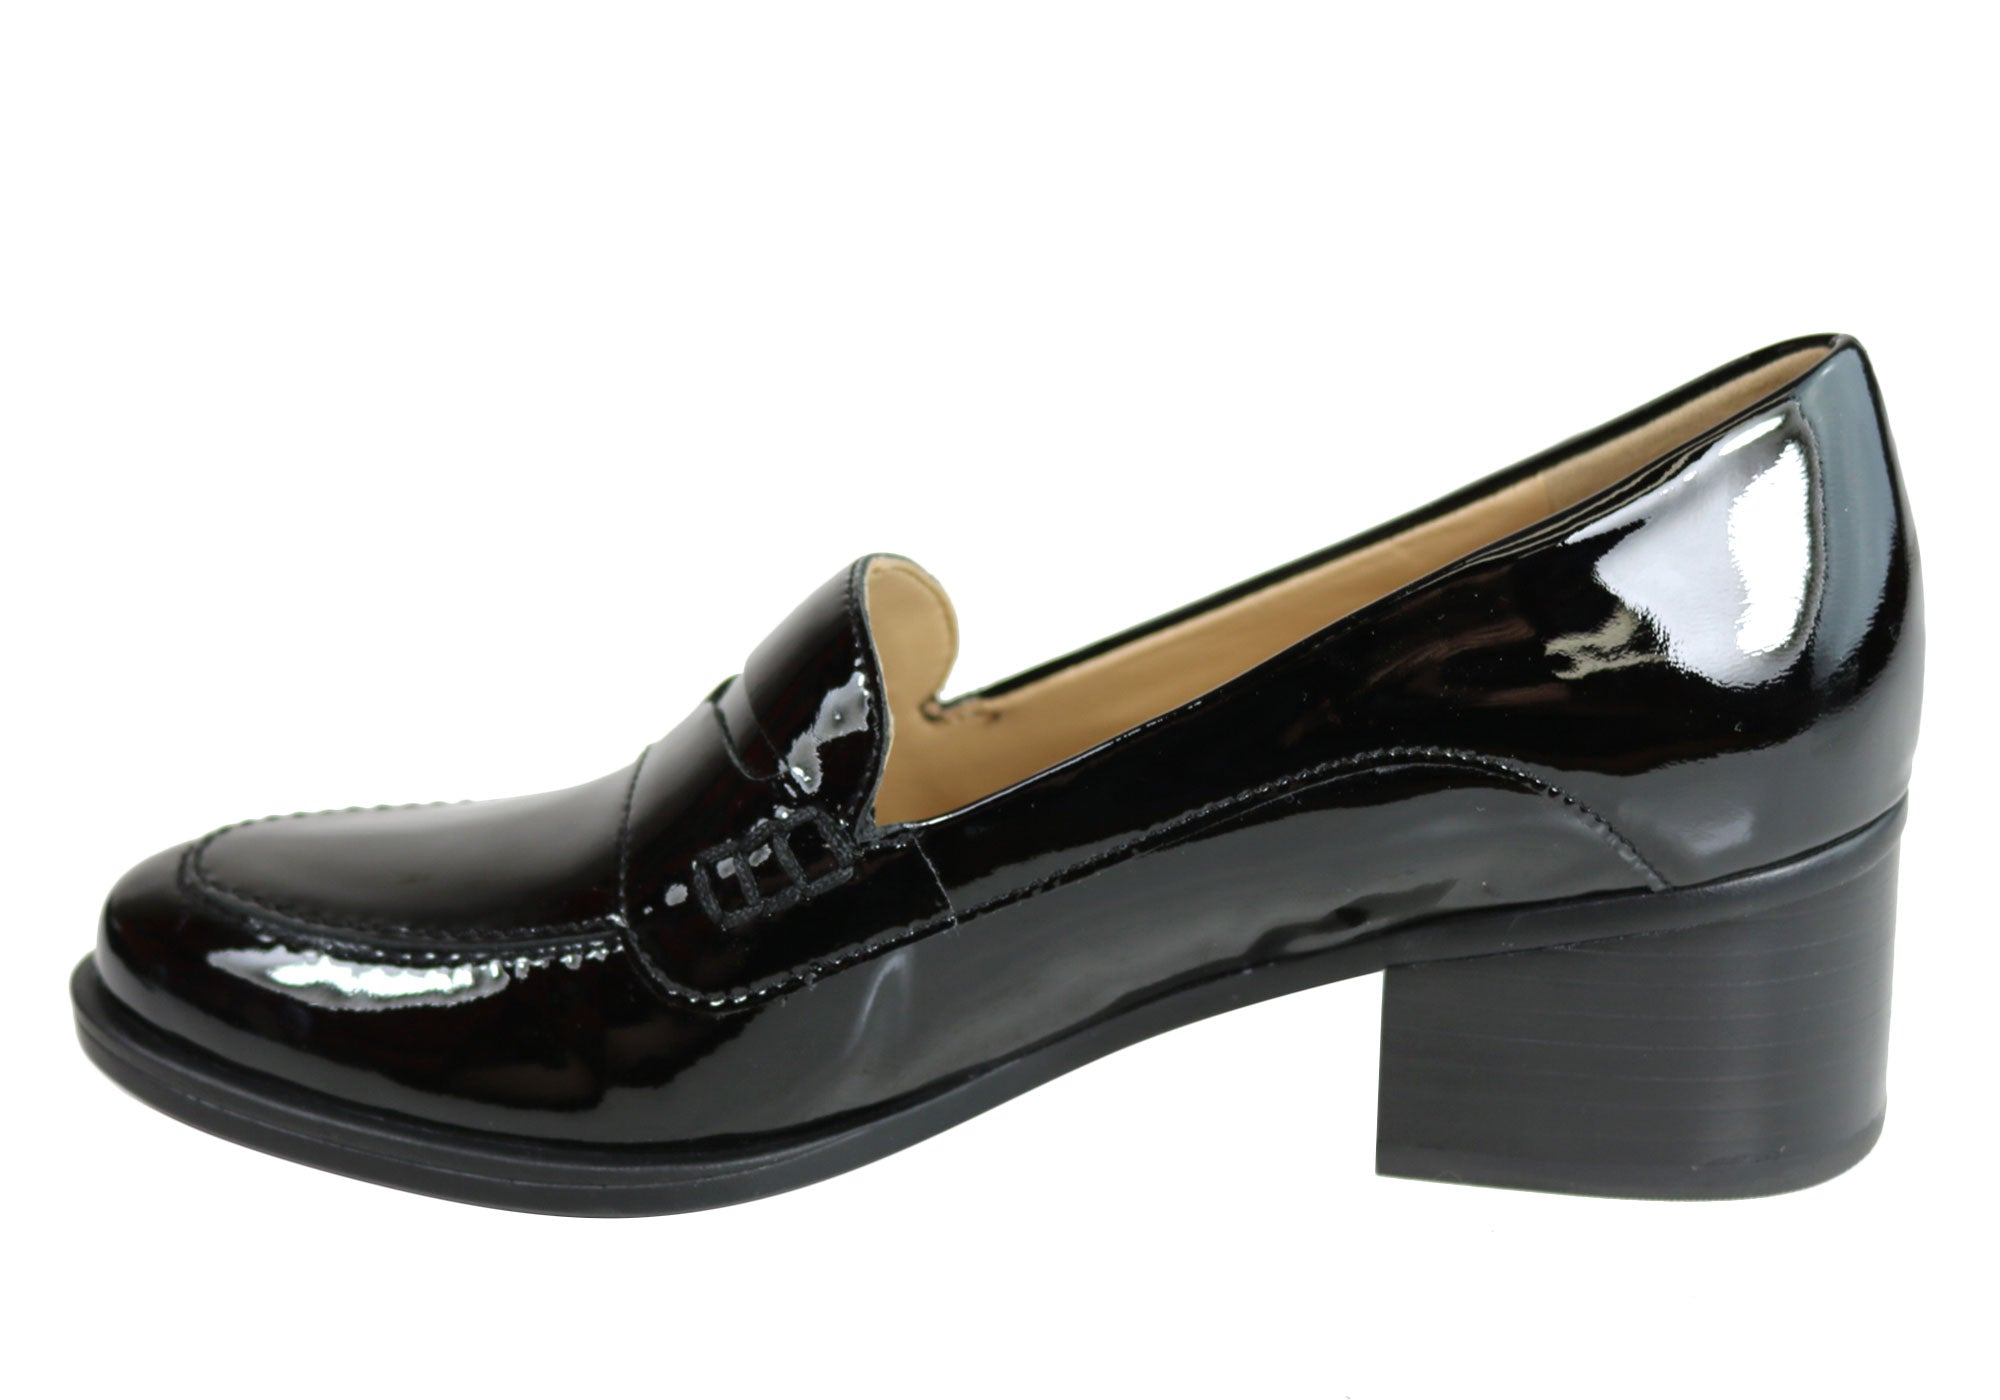 d66cfaa35f7 Home Naturalizer Dinah Womens Mid Heel Patent Leather Loafer Comfort Pumps.  Black Patent  Black Patent ...